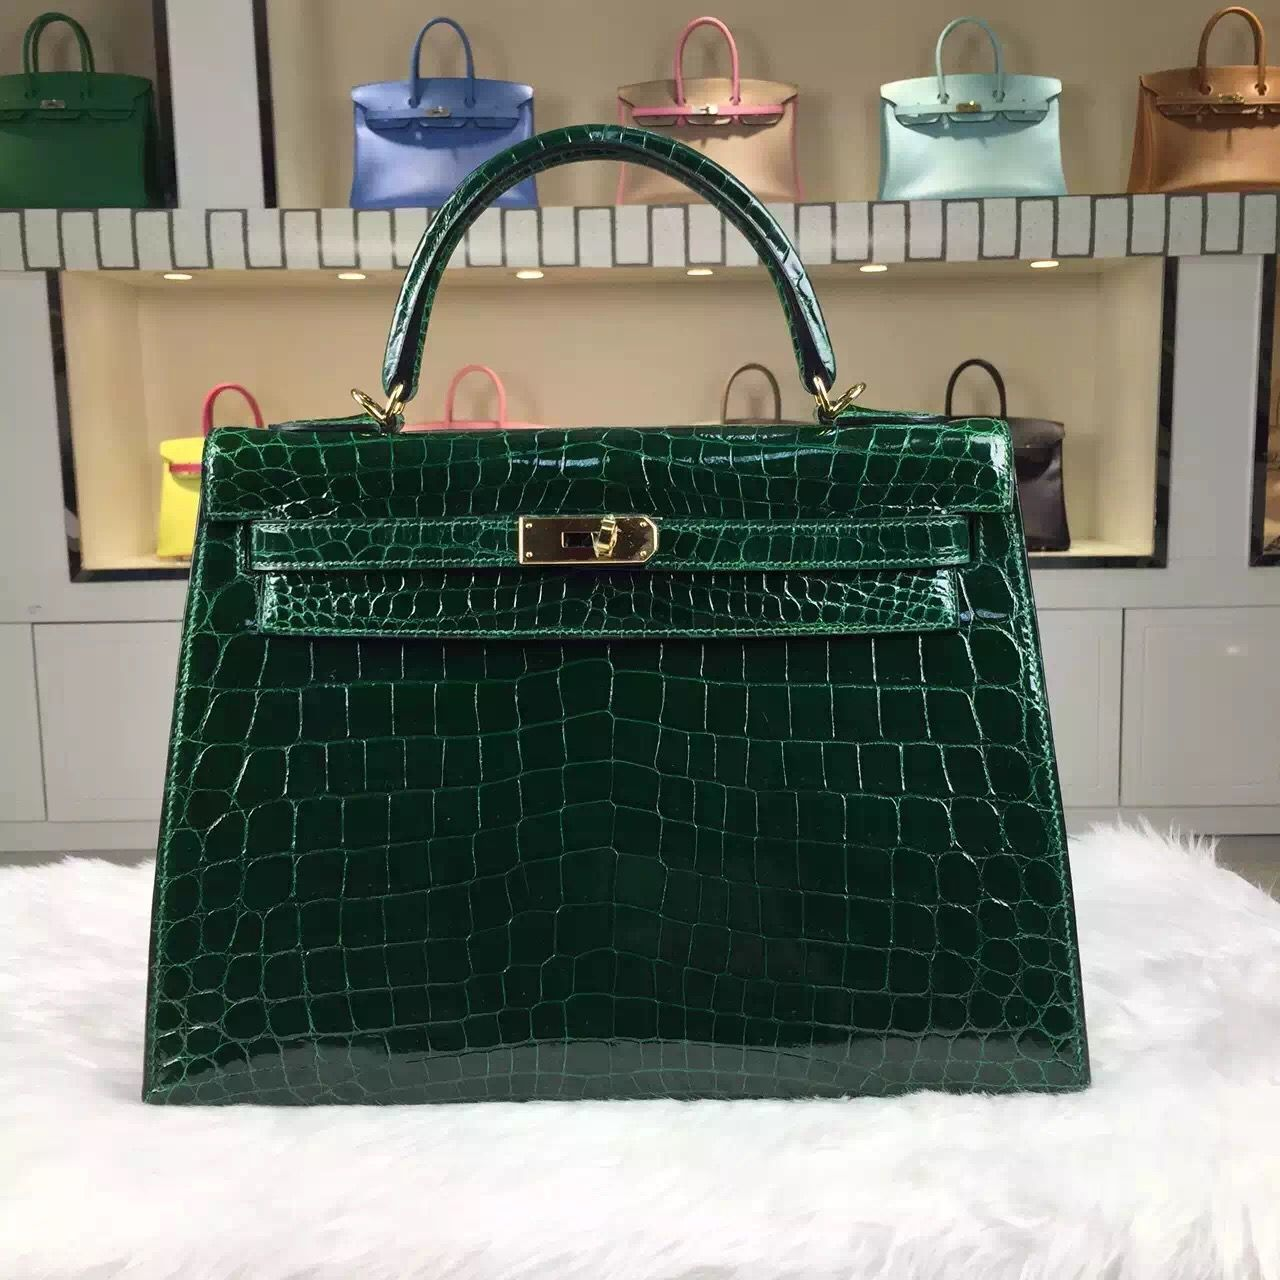 e1c0059786 Brand  Hermes  Style  Kelly Bag32CM   Material  HCP Shiny Crocodile Leather Color CK67  Vert fonce  Hardware  gold silver  Accessories  Padlock and keys